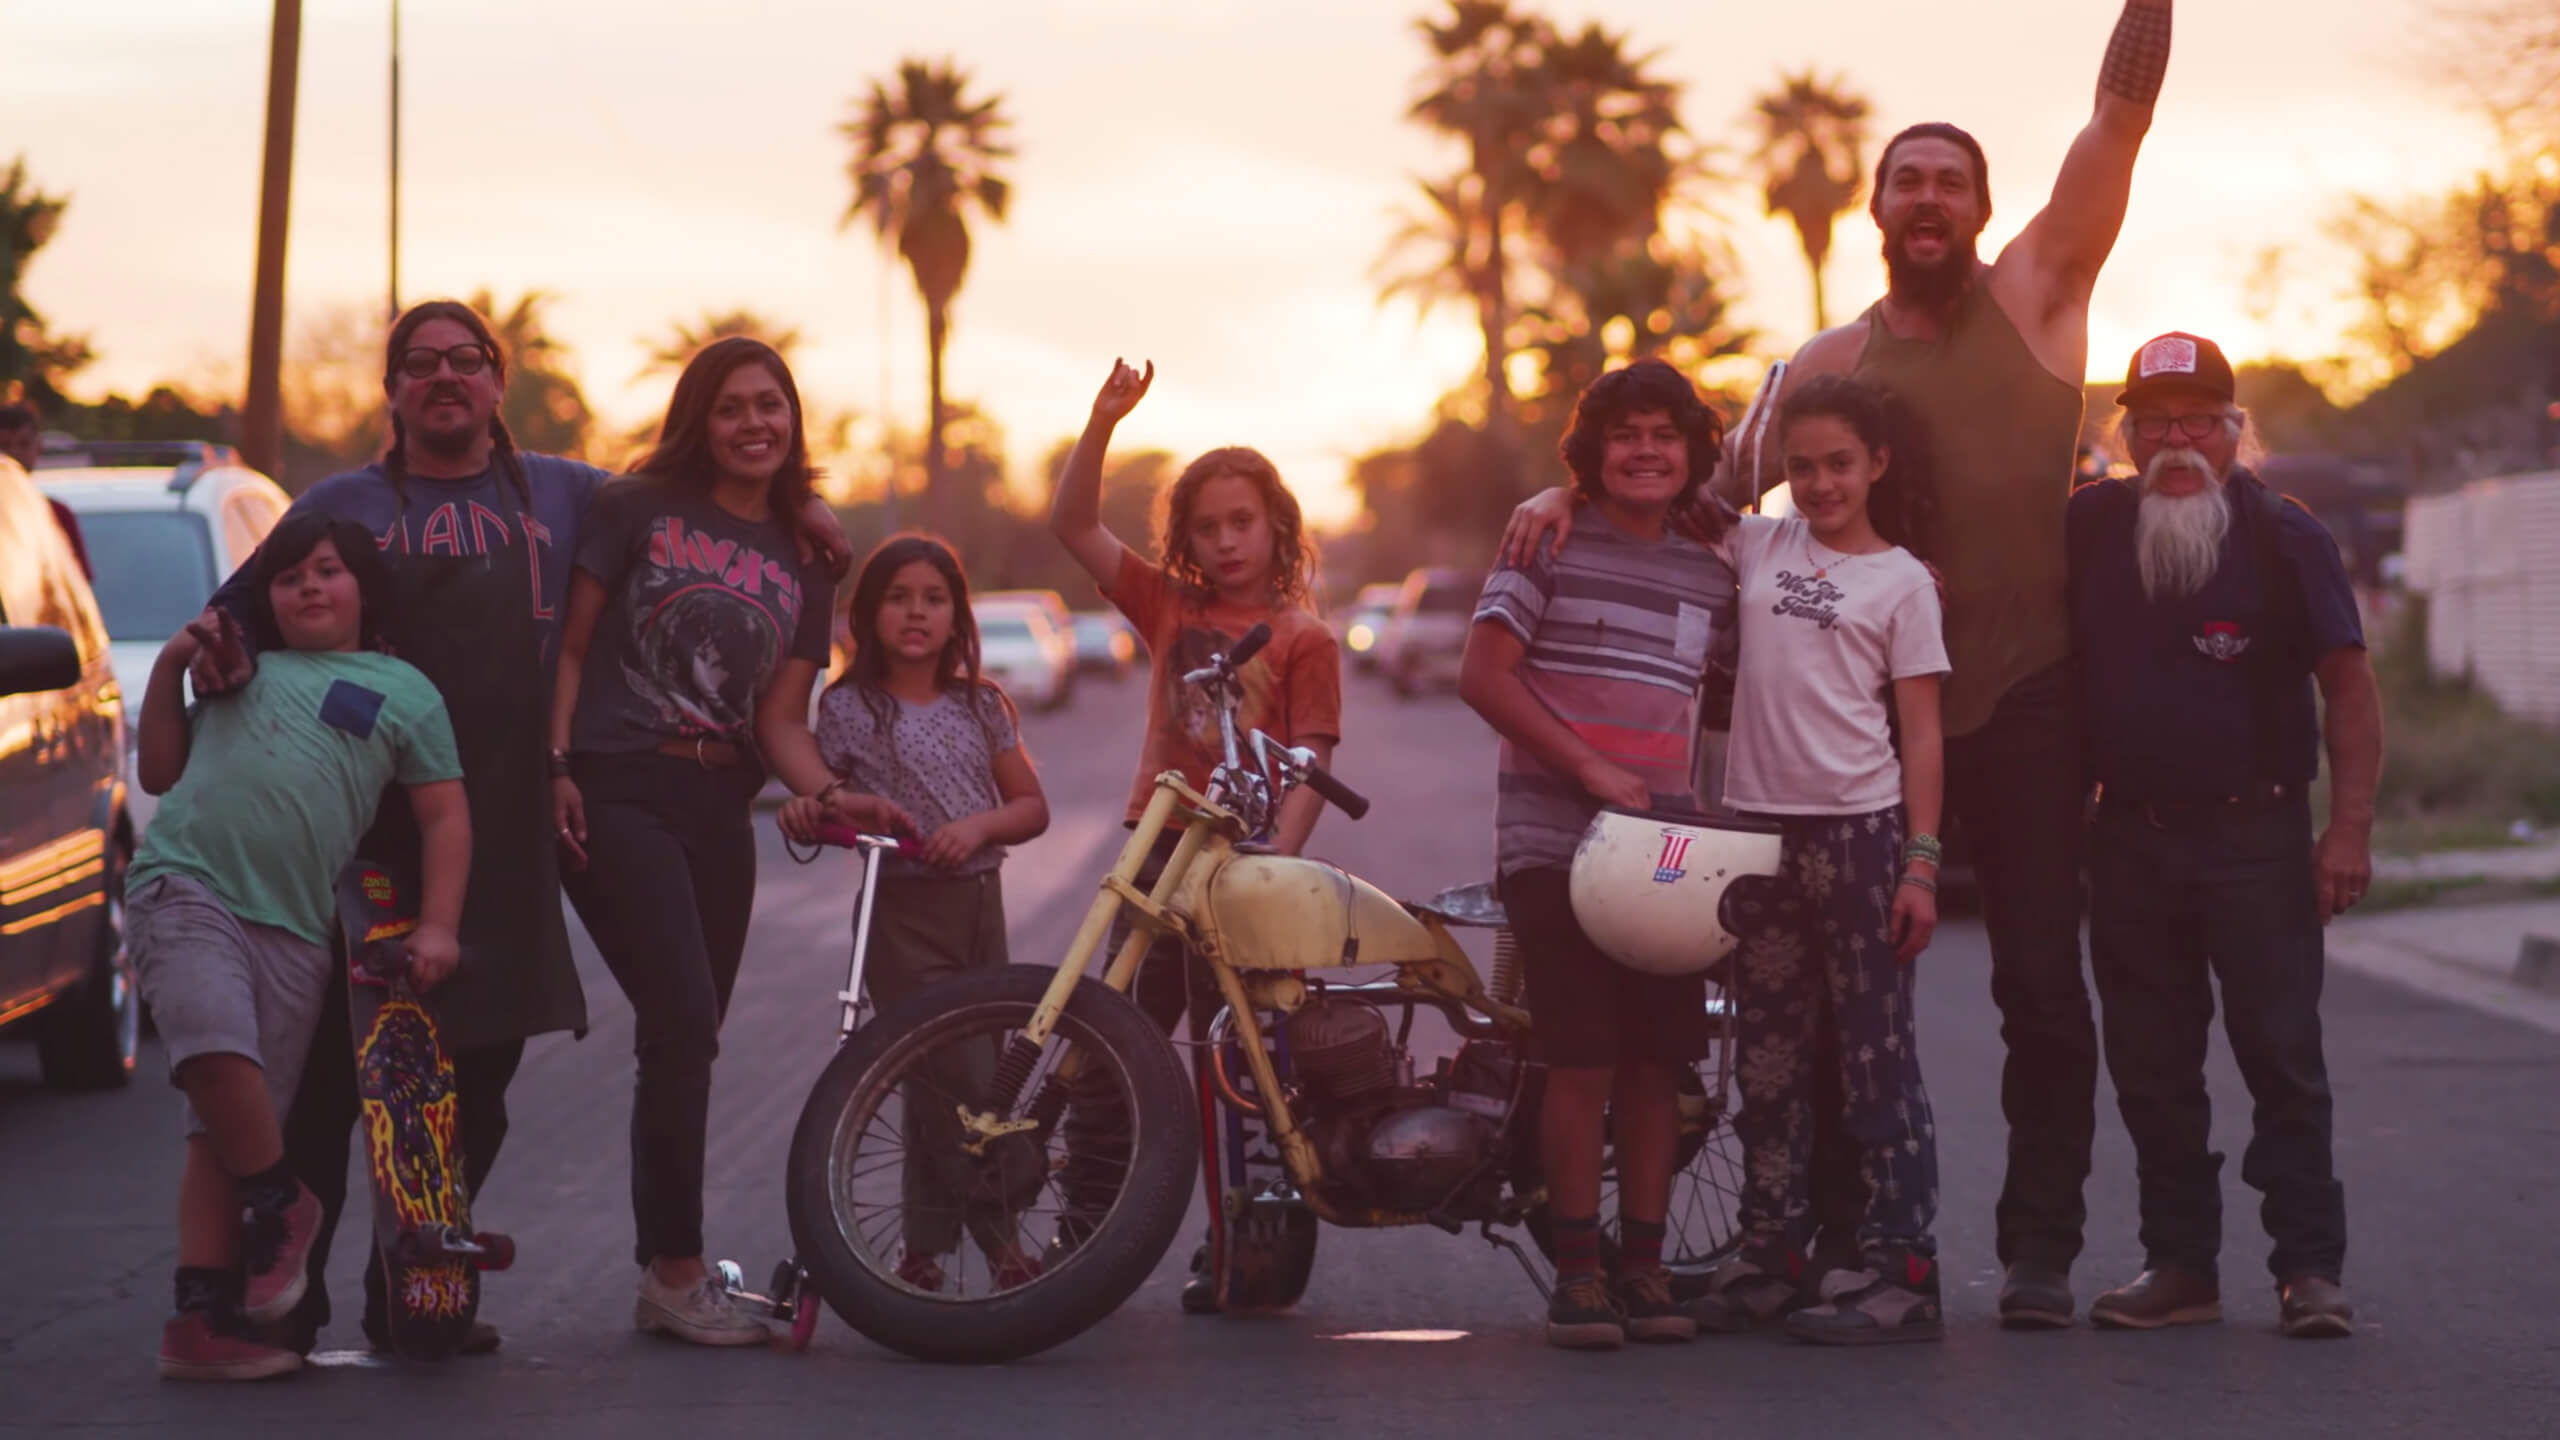 After 117 years of being an American pop culture staple, Harley-Davidson was ready to welcome new riders to the fold. Creative agency TMA helped create cultural resonance for the brand and capture younger imaginations through a partnership with Jason Momoa.